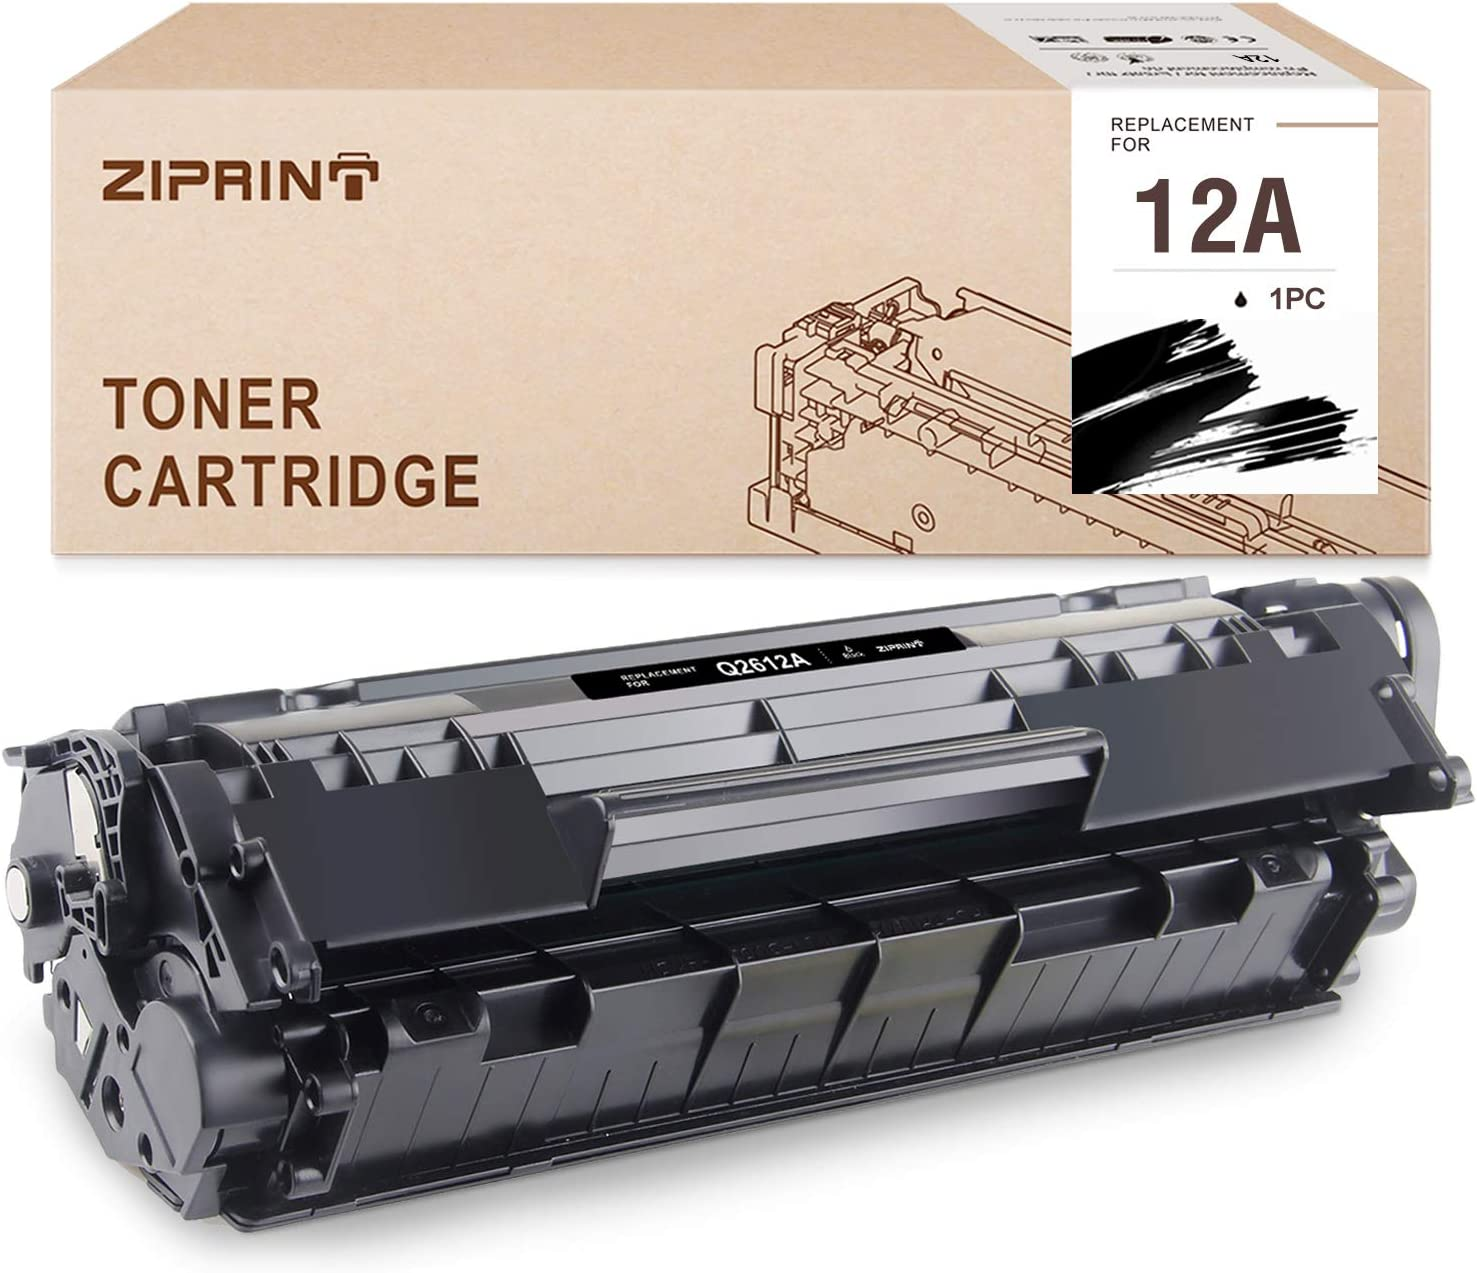 Ziprint Compatible Toner Cartridge Replacement for HP 12A Q2612A use with HP Laserjet 1020 1018 1012 1022 3015 3020 3030 3050 3052 3055 (Black, 1-Pack)